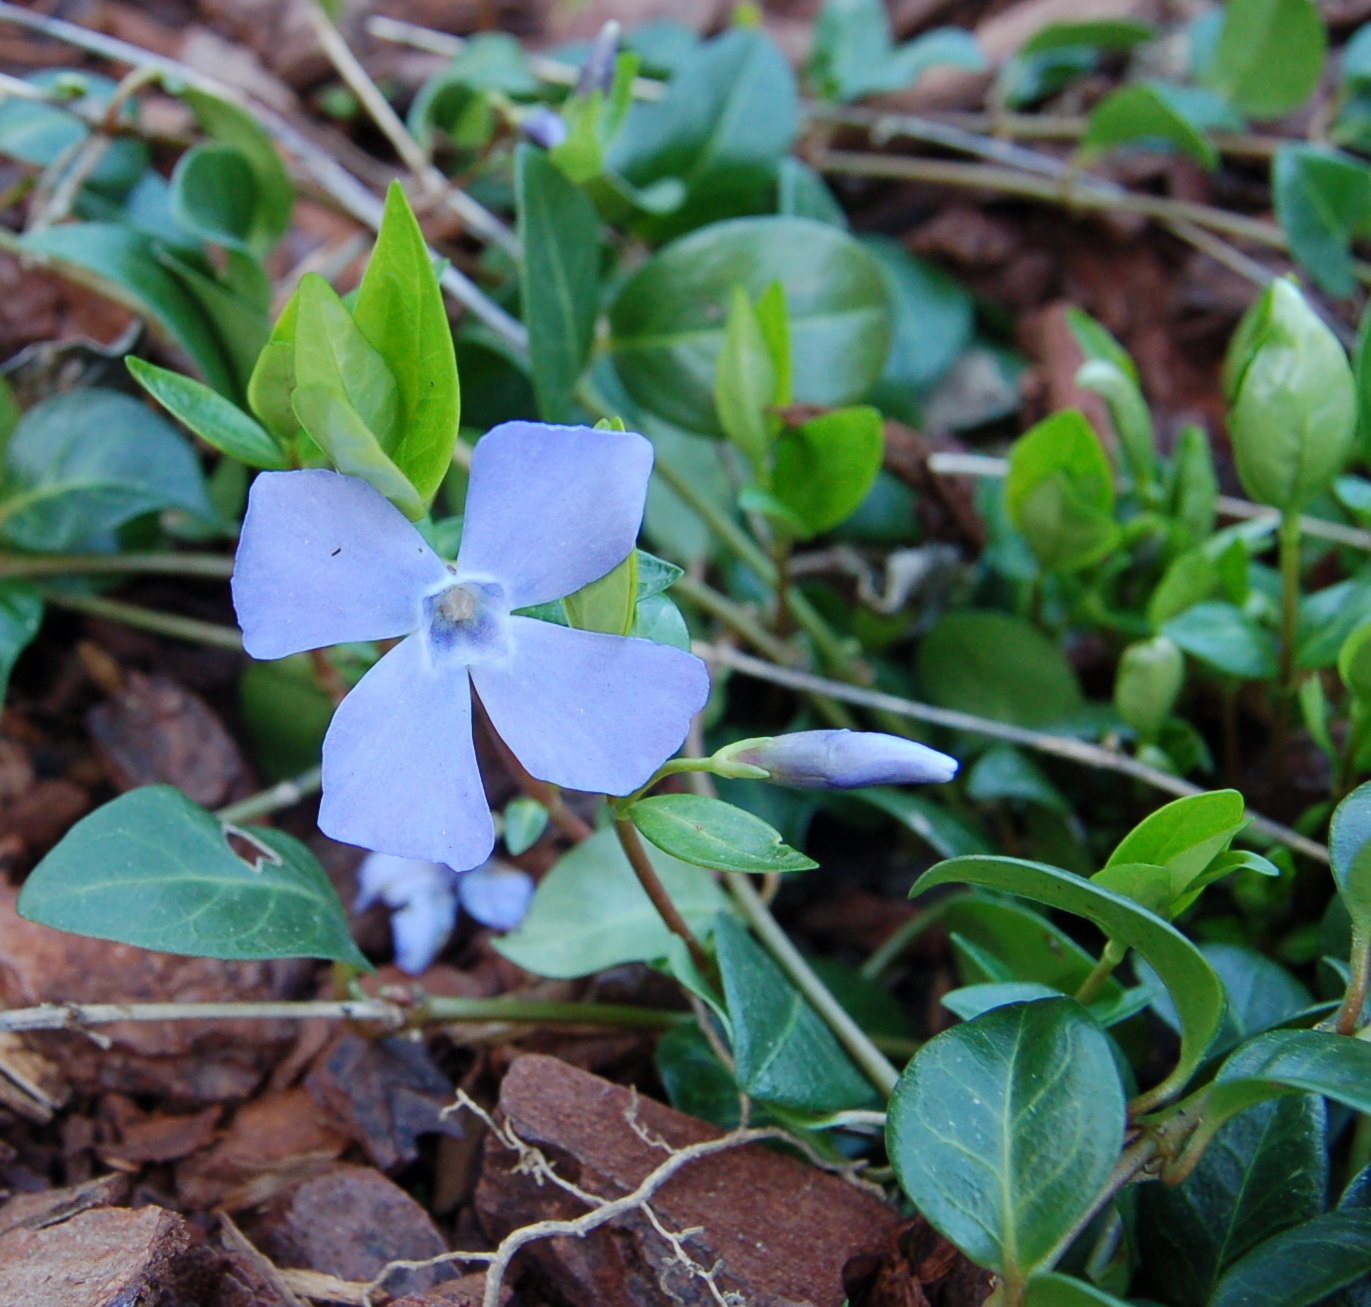 a periwinkle